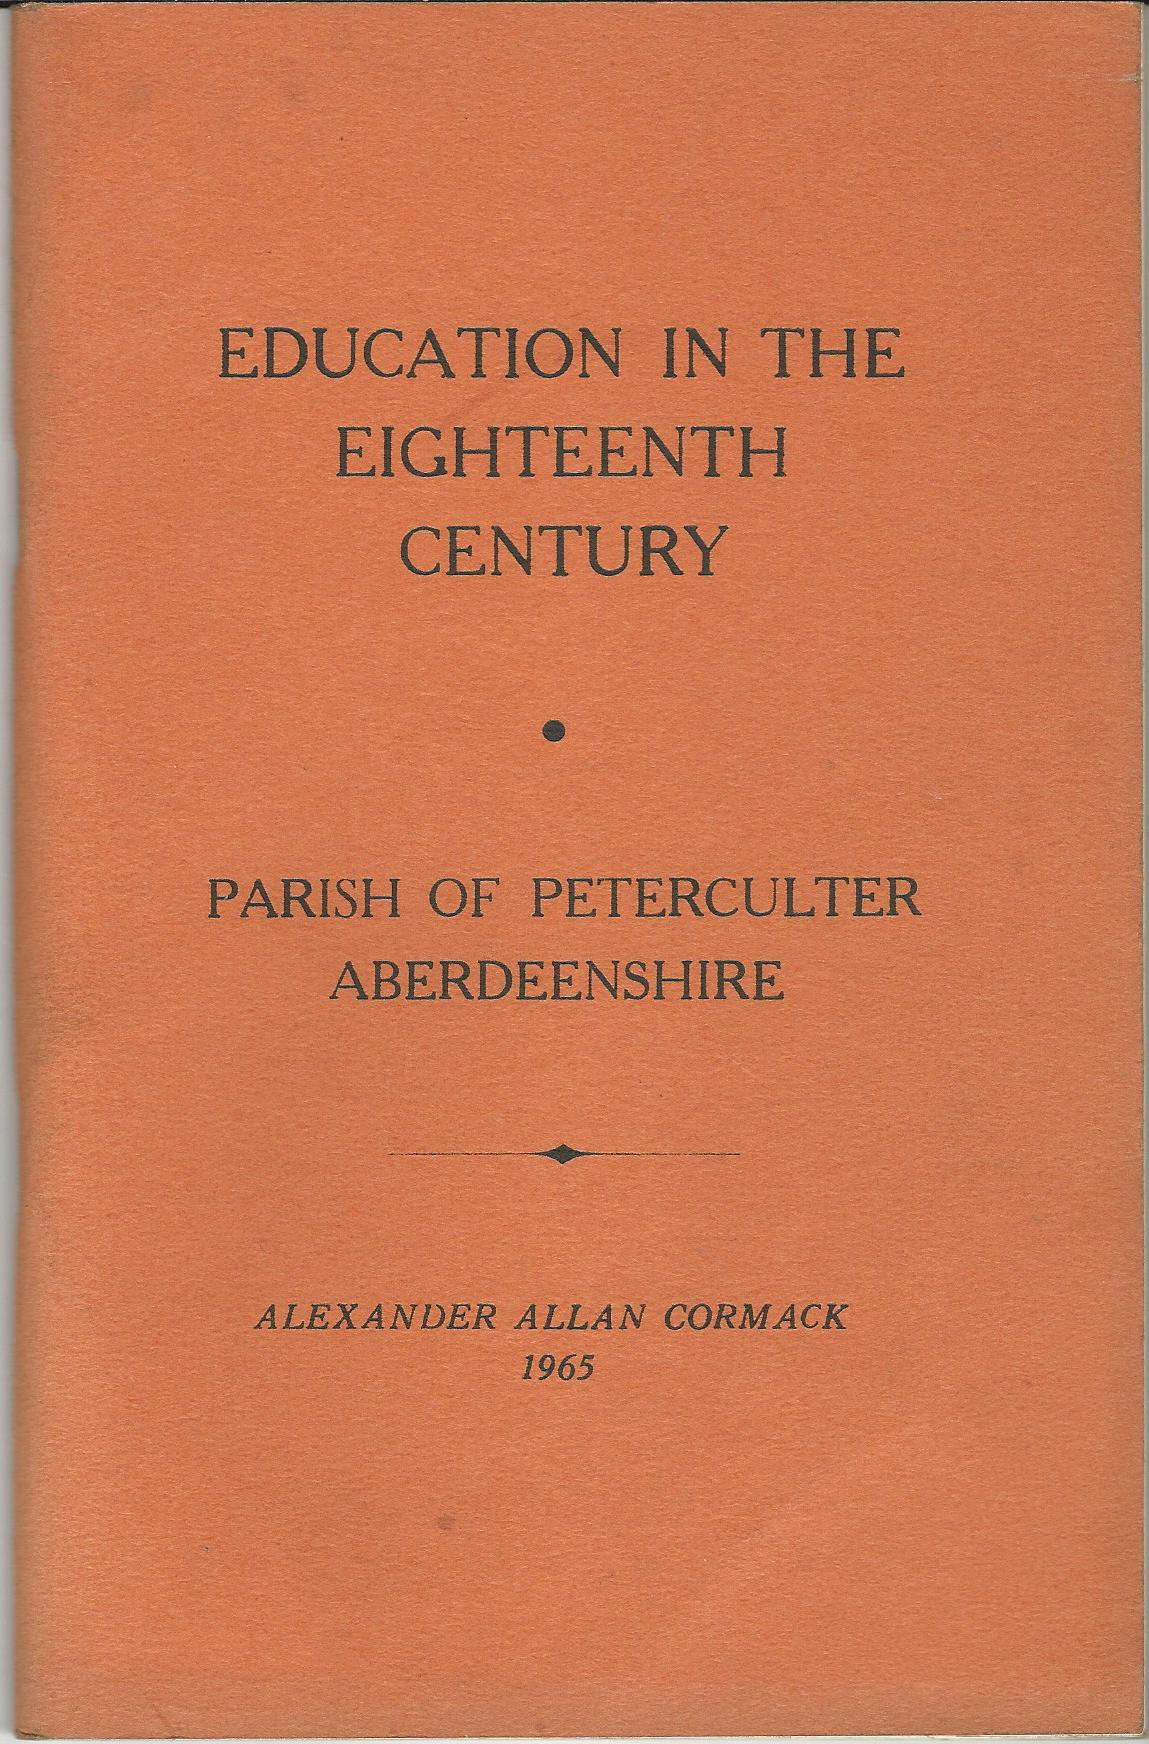 Image for Education in the Eighteenth Century: Parish of Peterculter, Aberdeenshire.